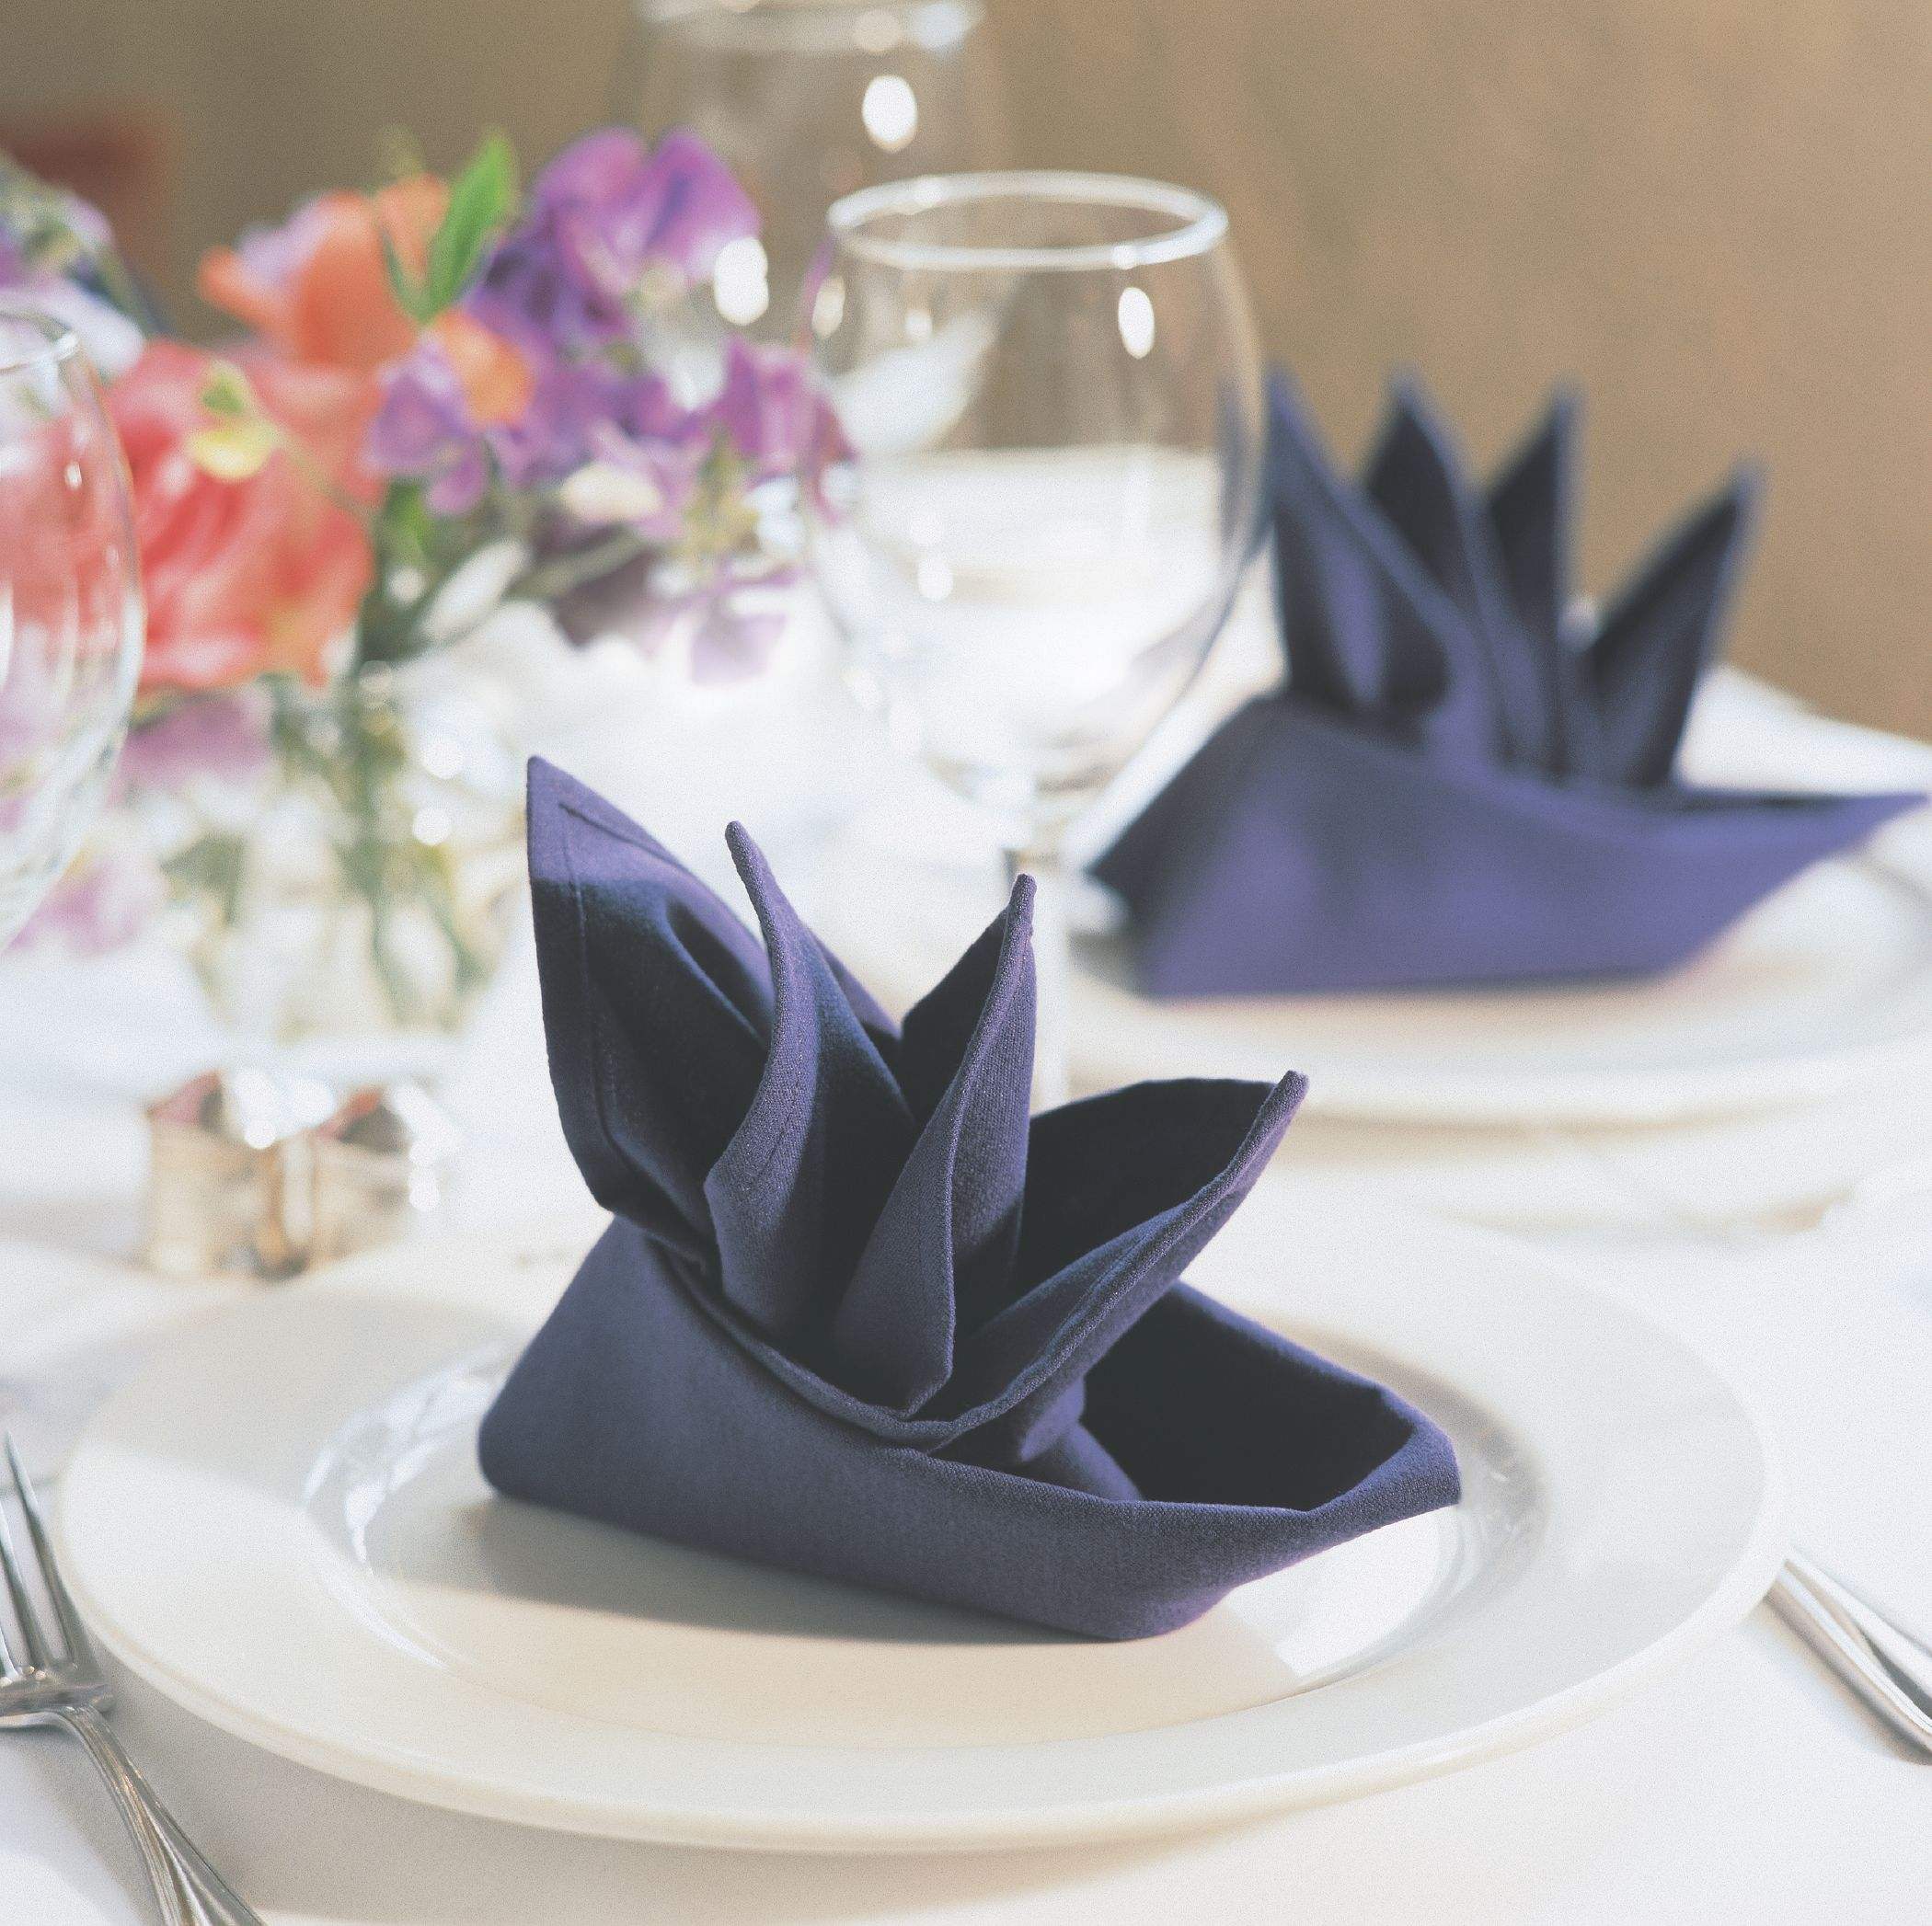 Linnen Servetten Vouwen Servetten Tafellinnen Cloth Napkin Folding Wedding Napkin